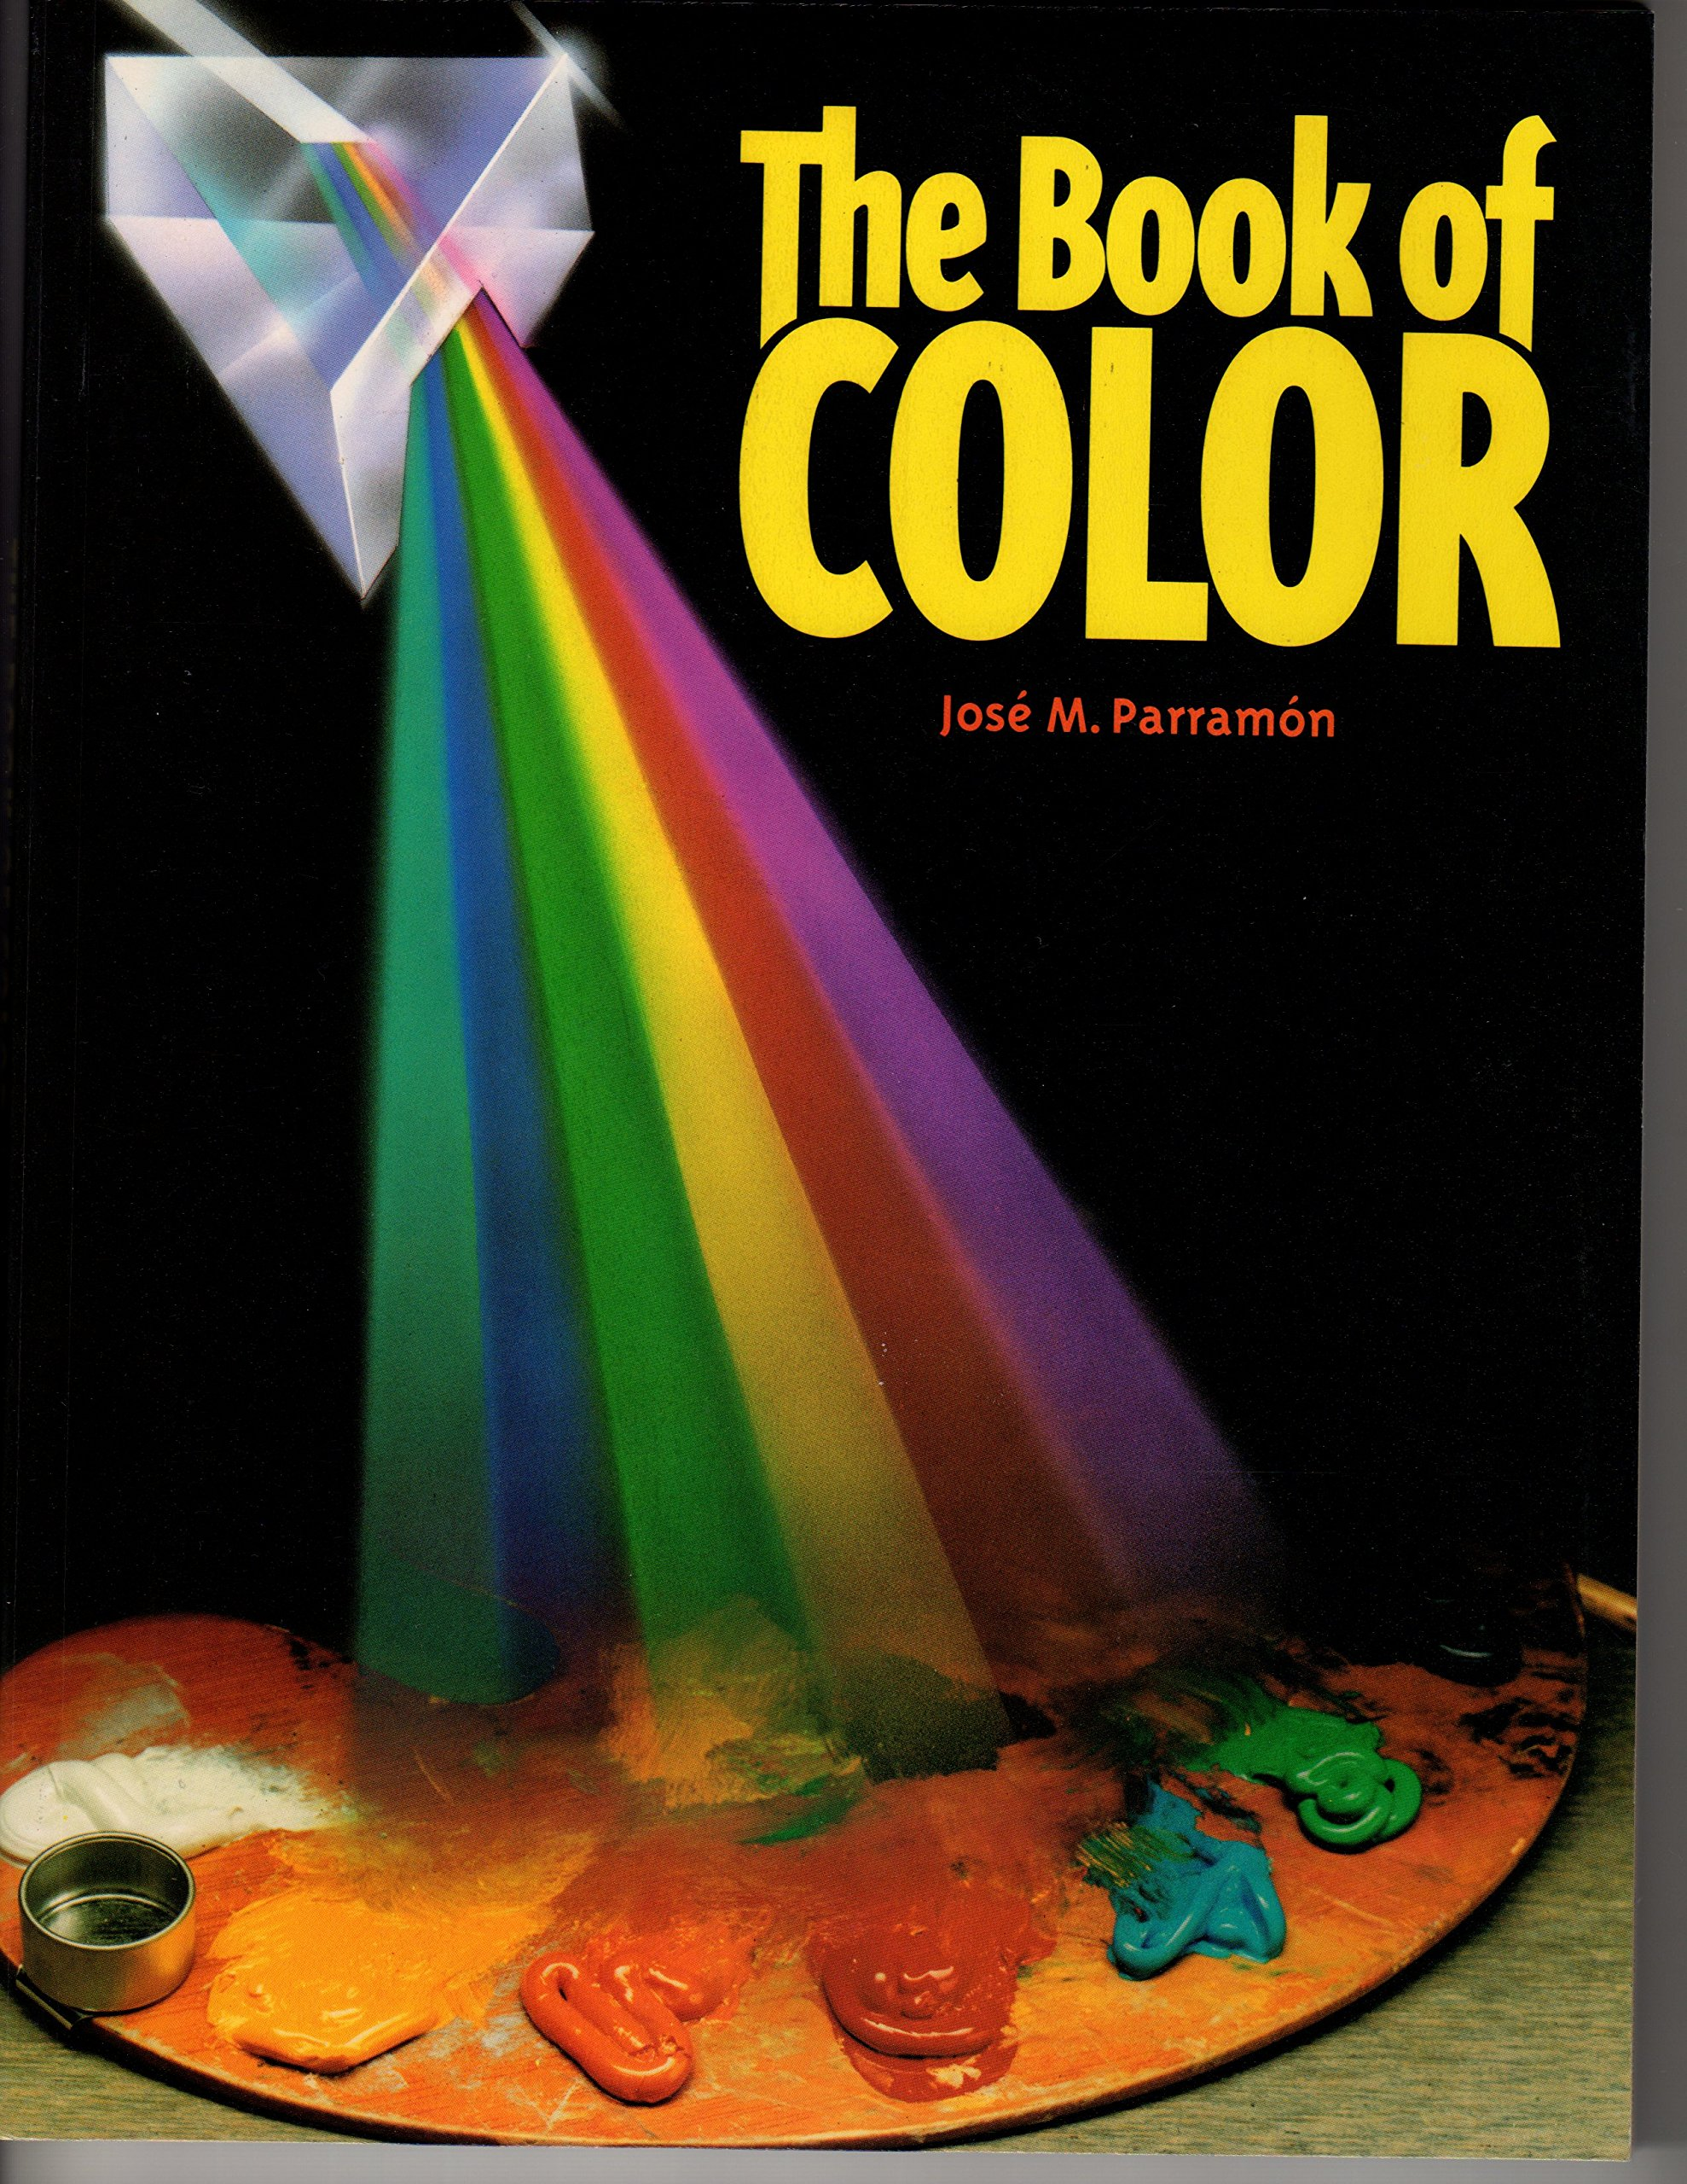 The Book of Color the History of Color Color Theory and